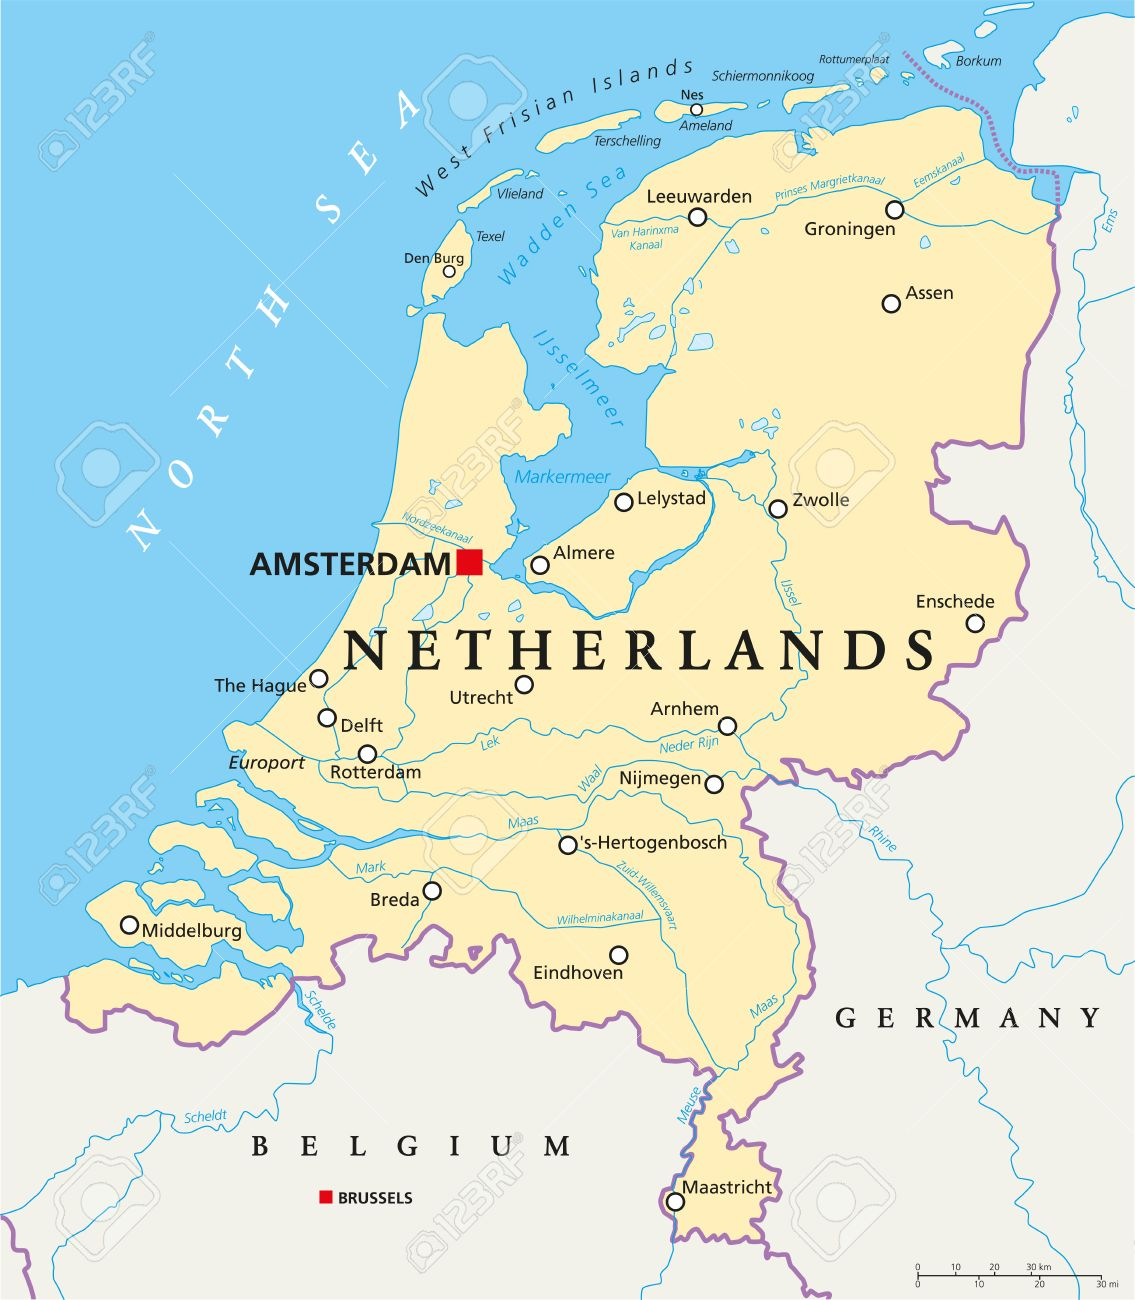 Netherlands Political Map With Capital Amsterdam National Borders